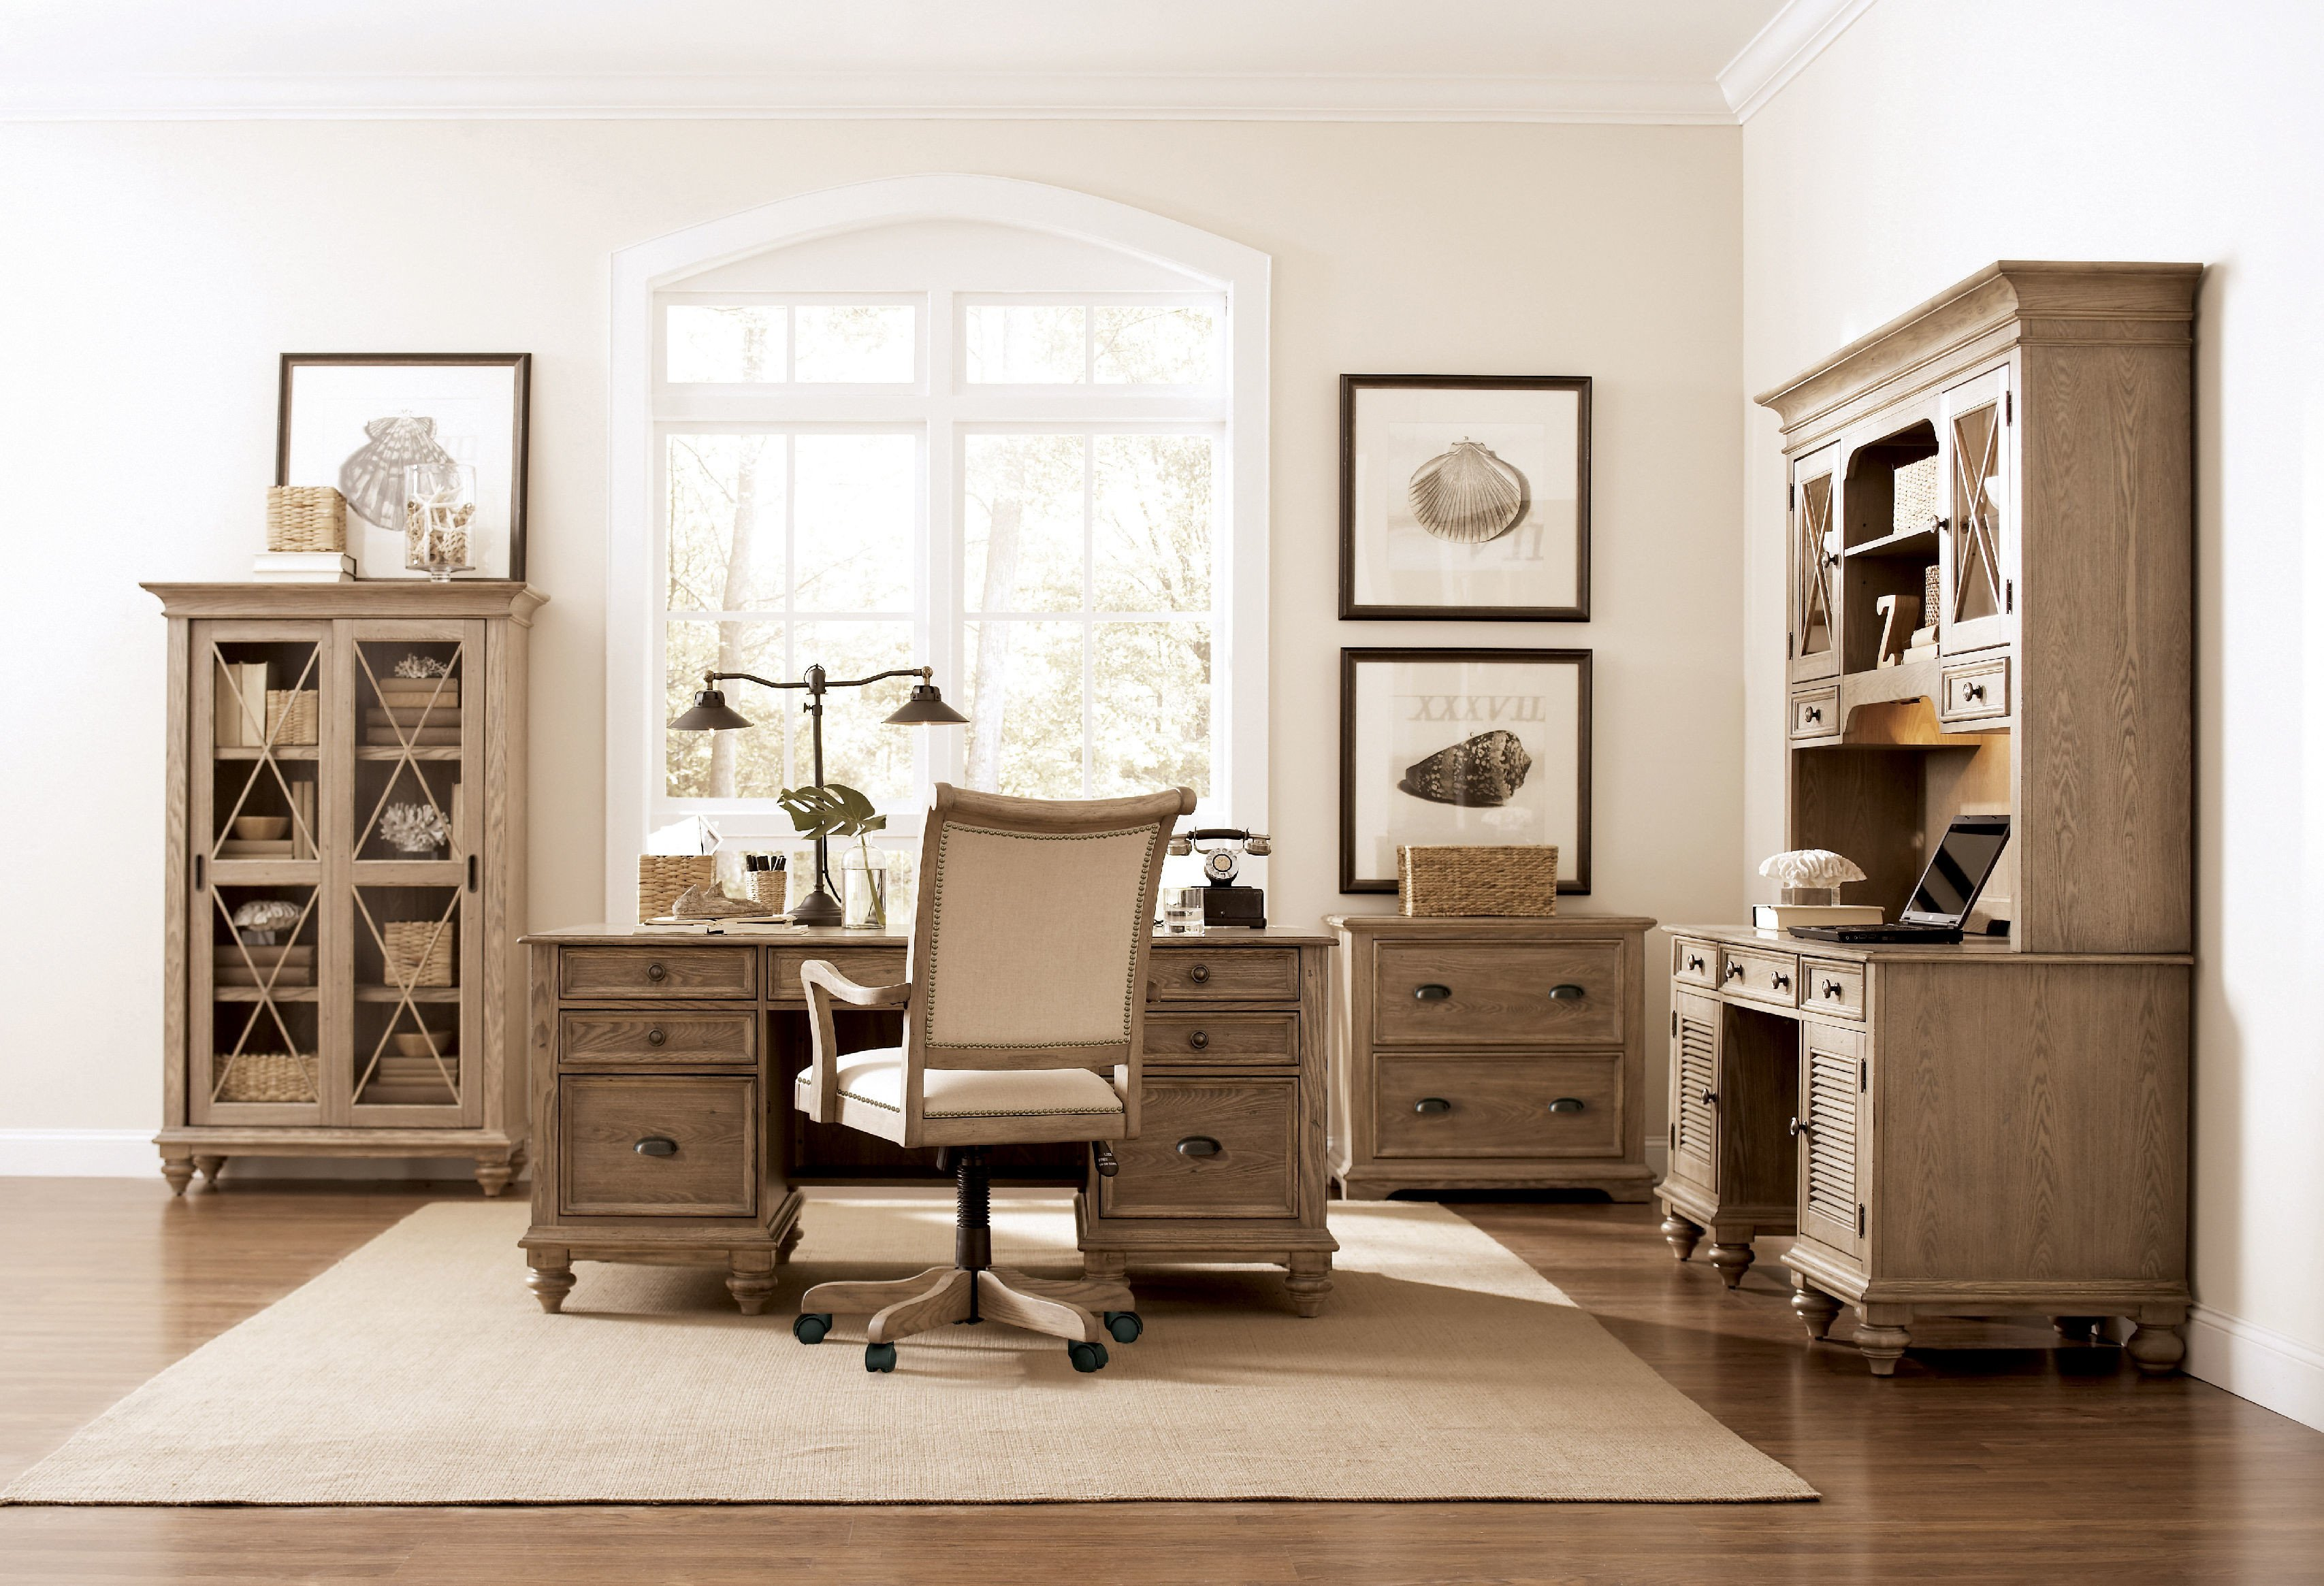 Drexel Heritage Bedroom Furniture Elegant Most Favored Inlay Visually Deceptive Furniture Collection